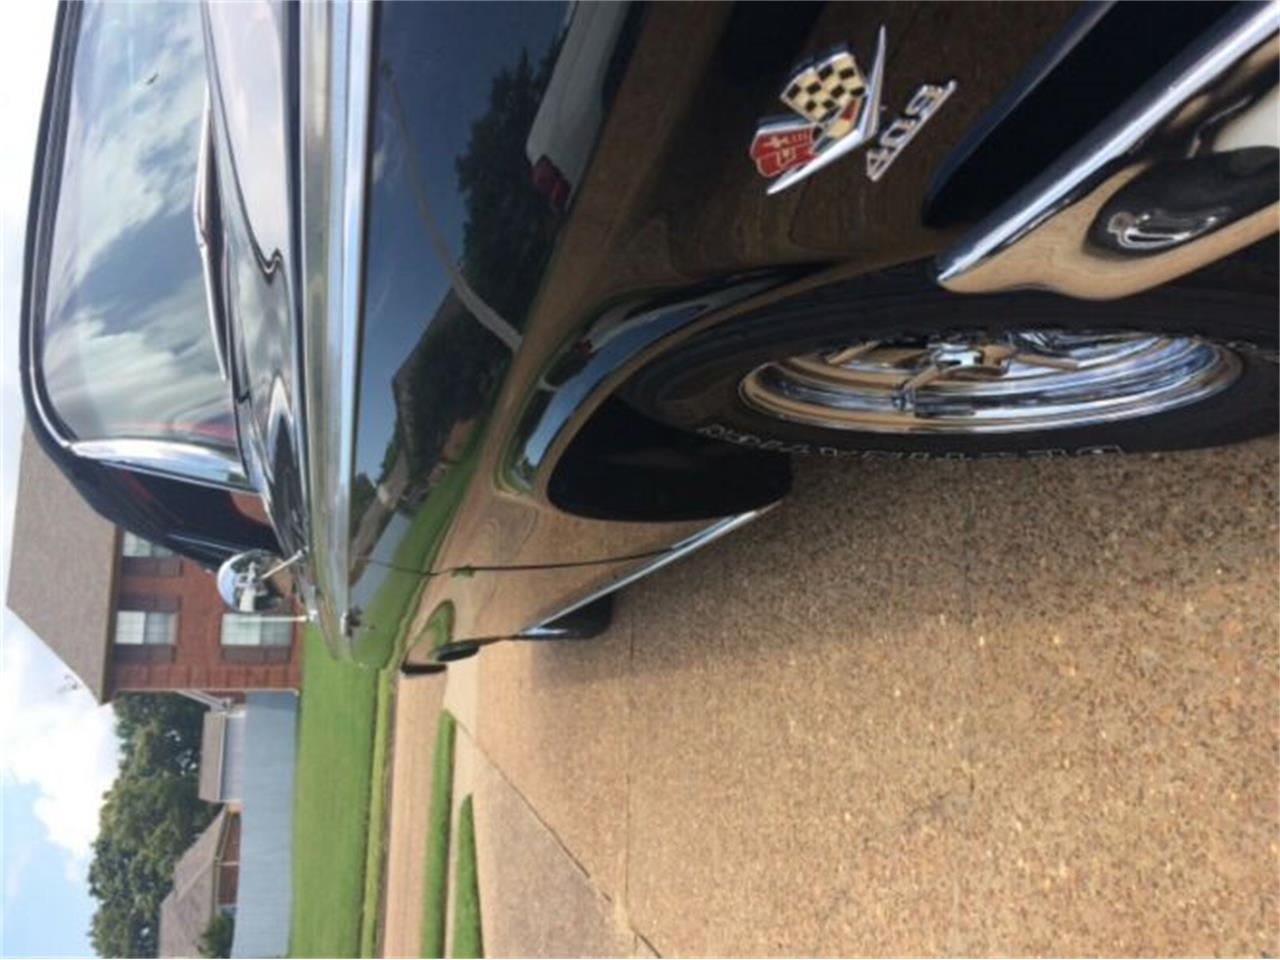 Large Picture of 1962 Chevrolet Impala located in Cadillac Michigan - $84,495.00 Offered by Classic Car Deals - QKSX